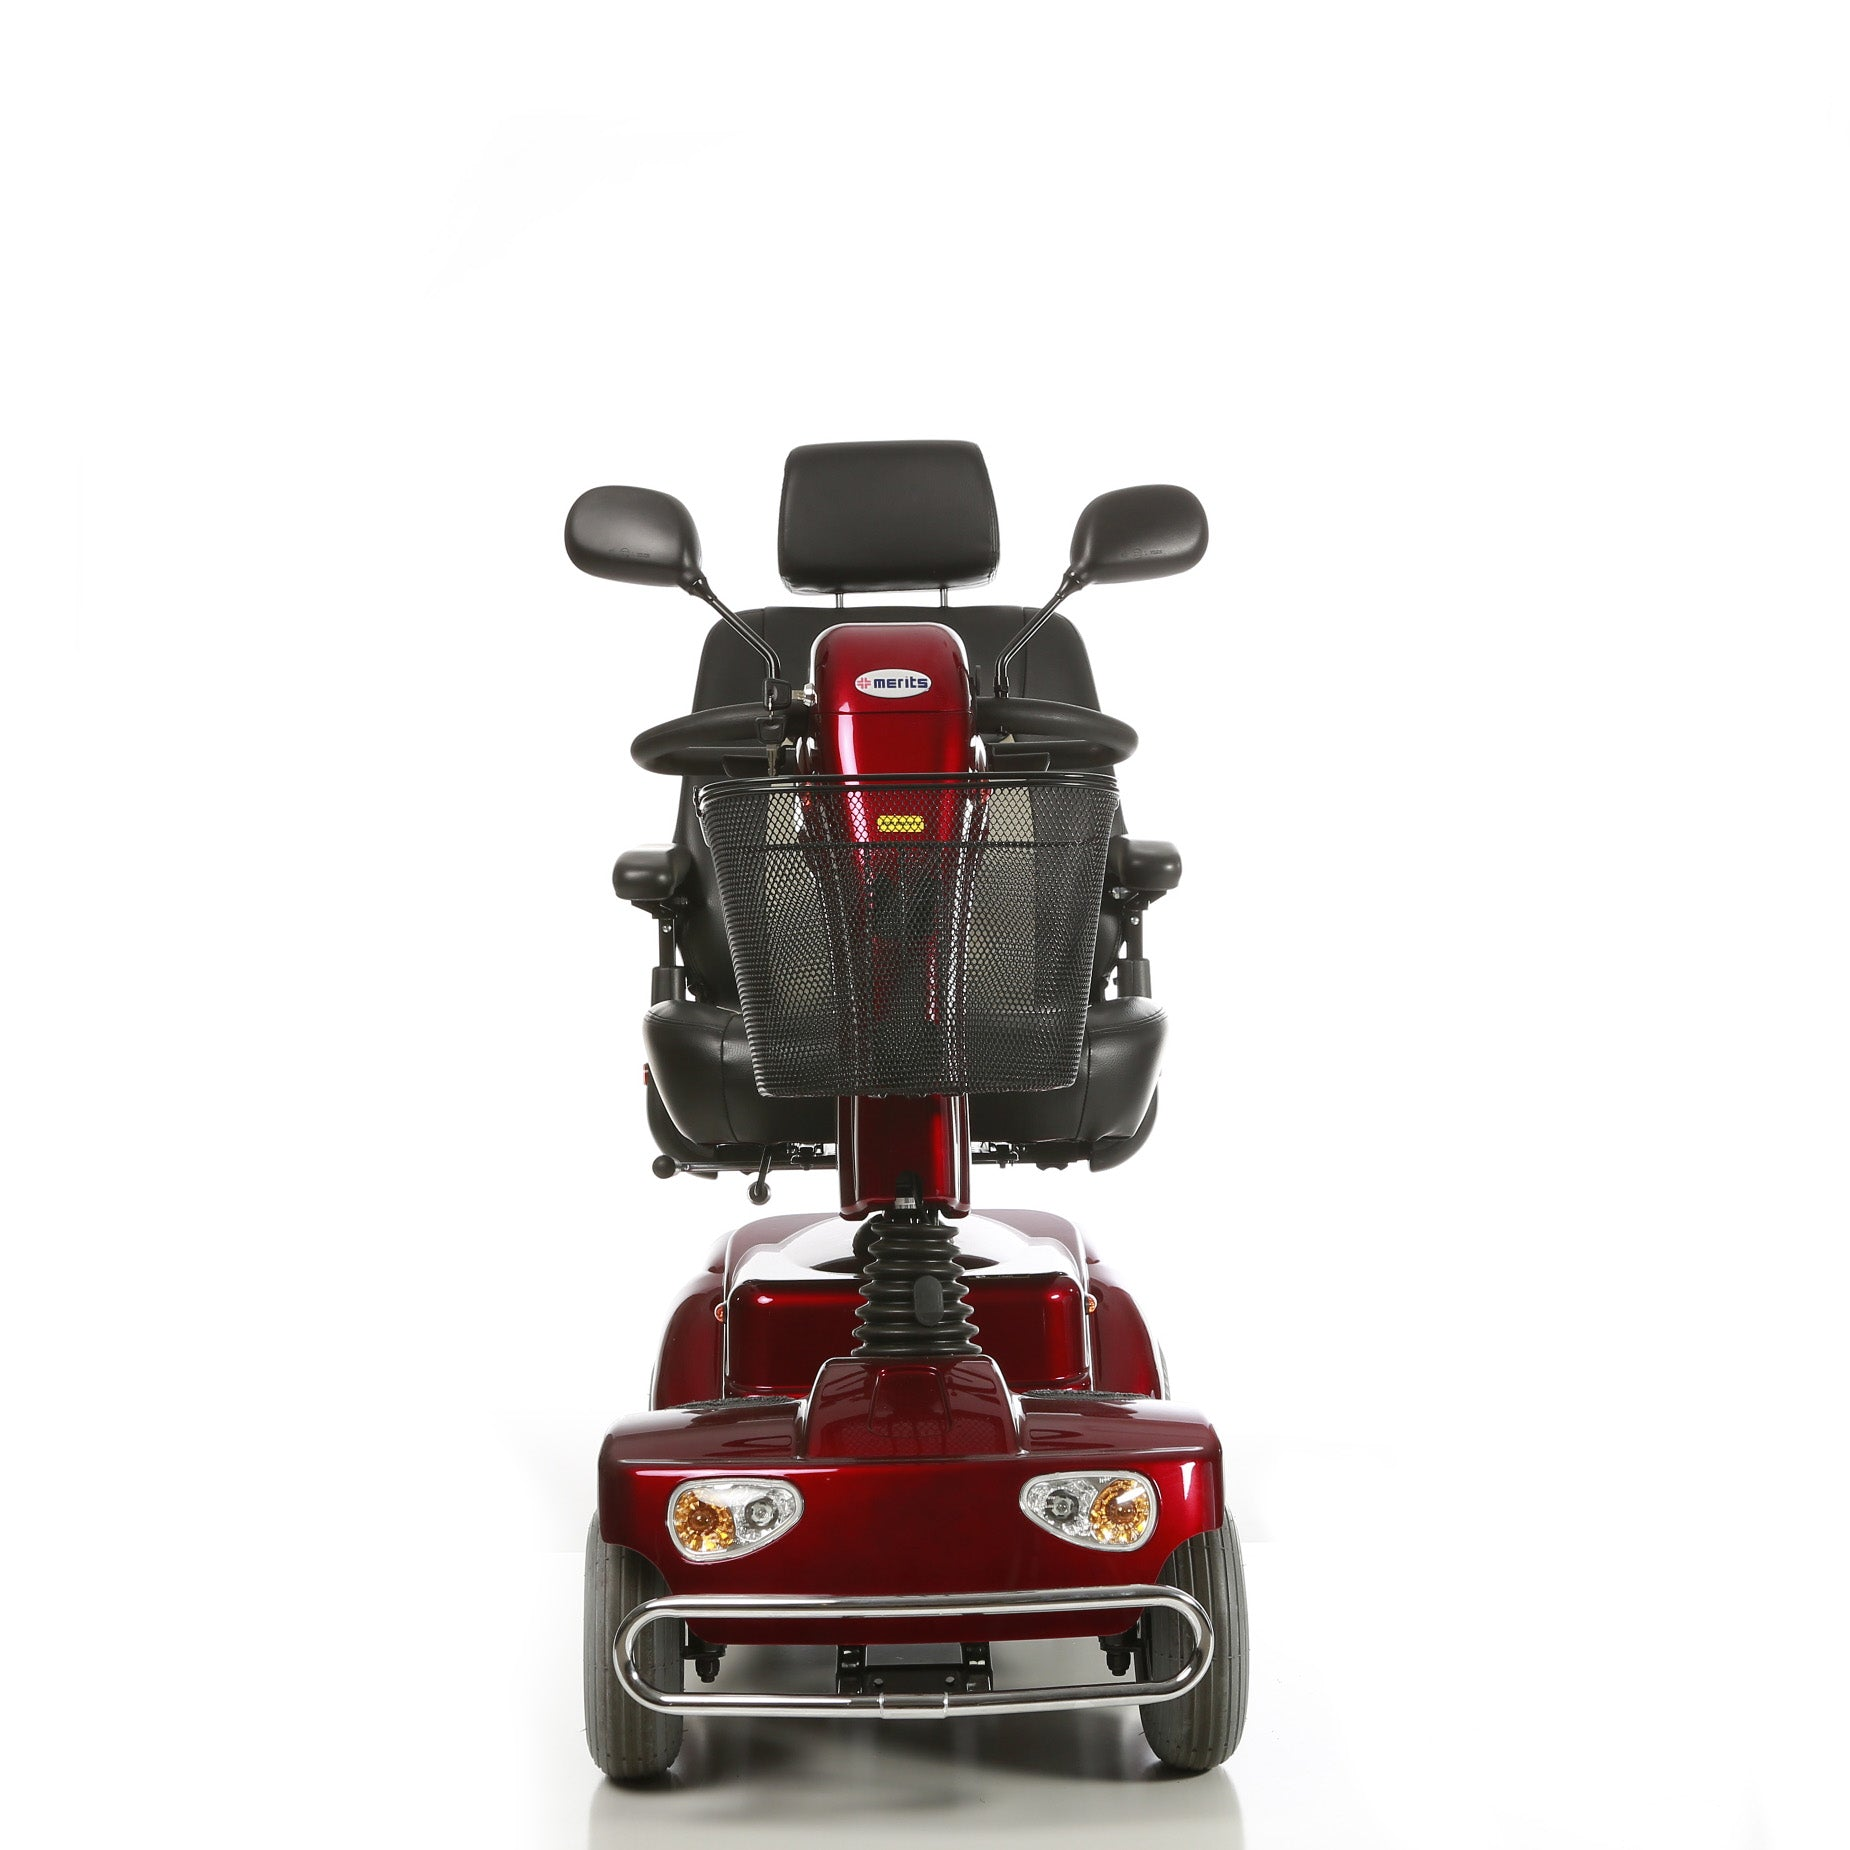 Merits Pioneer 4 Scooter with Option for Elevating Seat